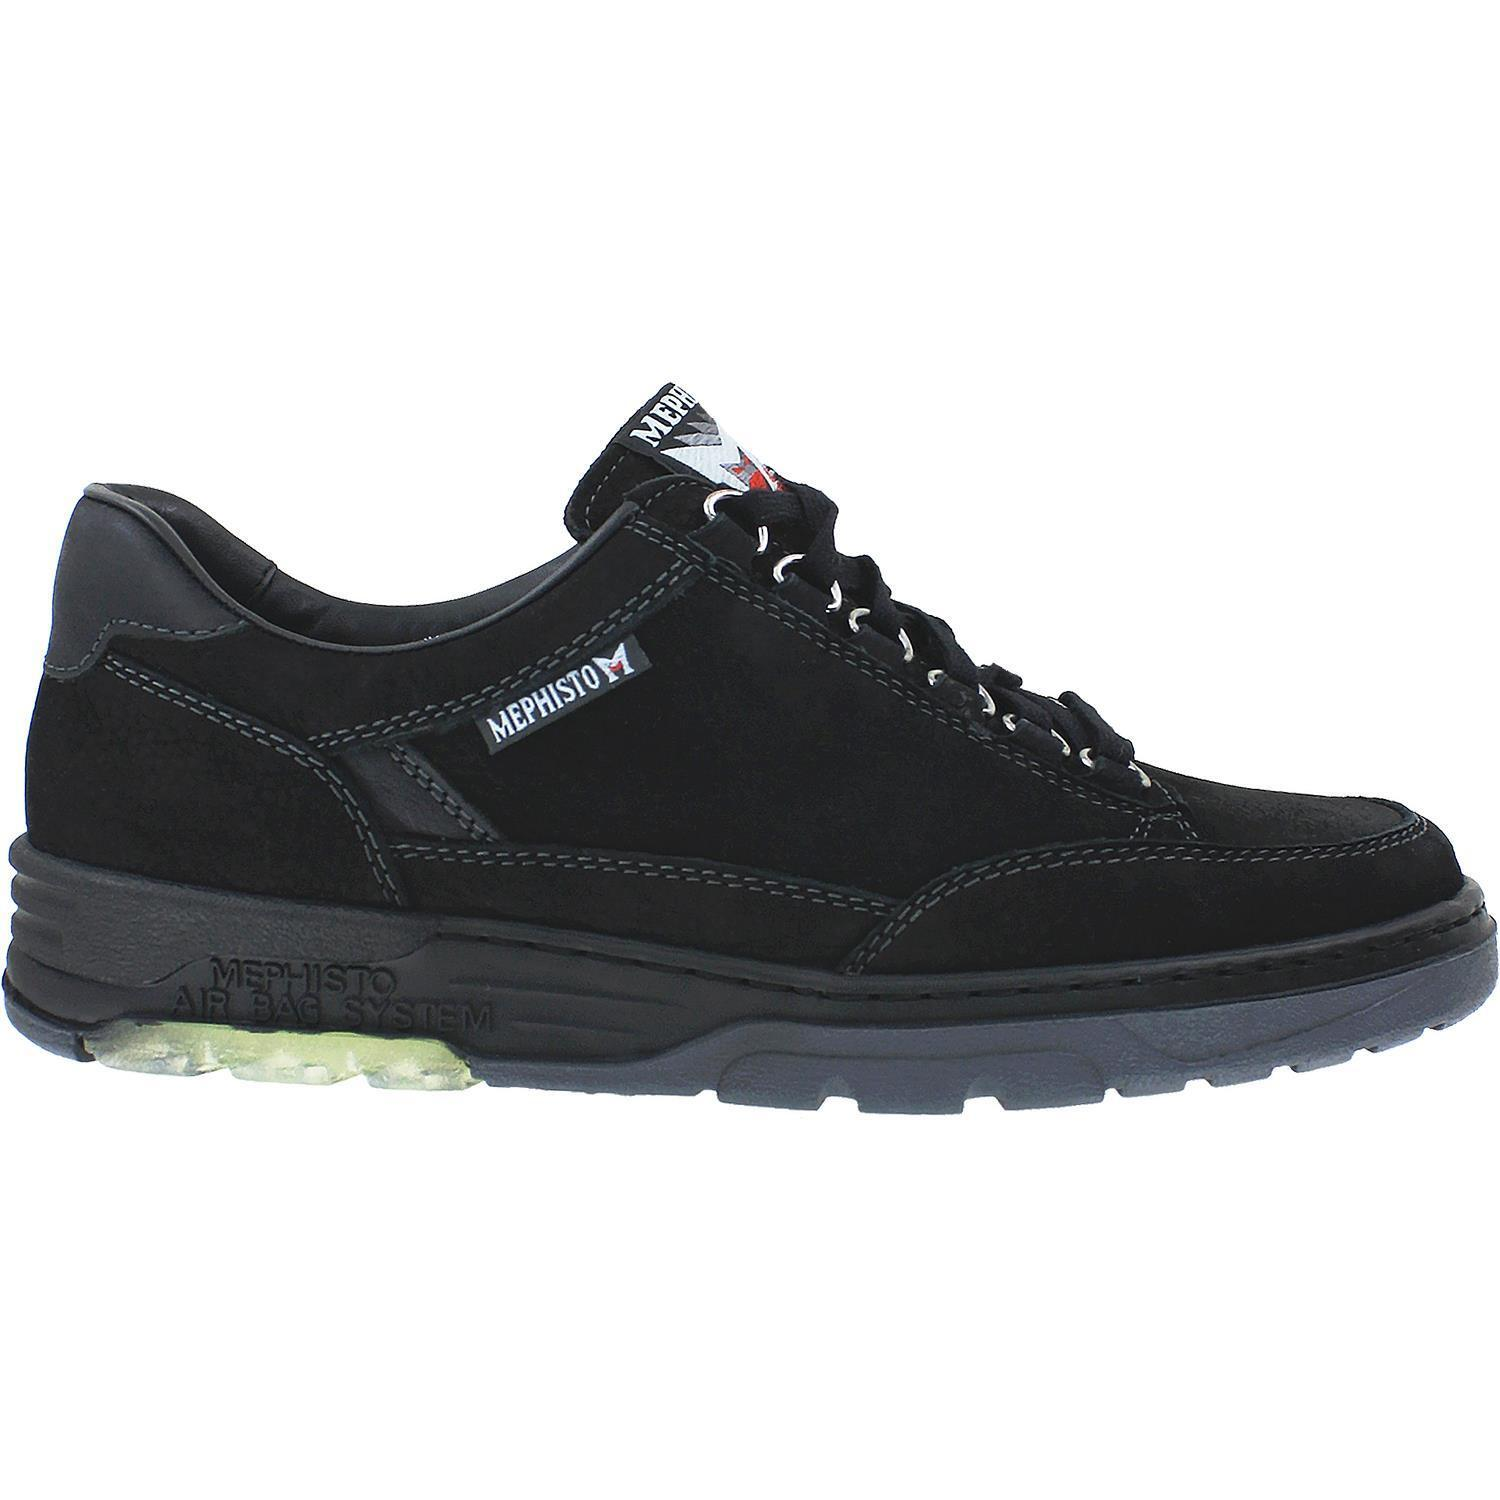 MEPHISTO uomo MICK, WALKING COMFORT LACE scarpe, ARCH SUPPORT